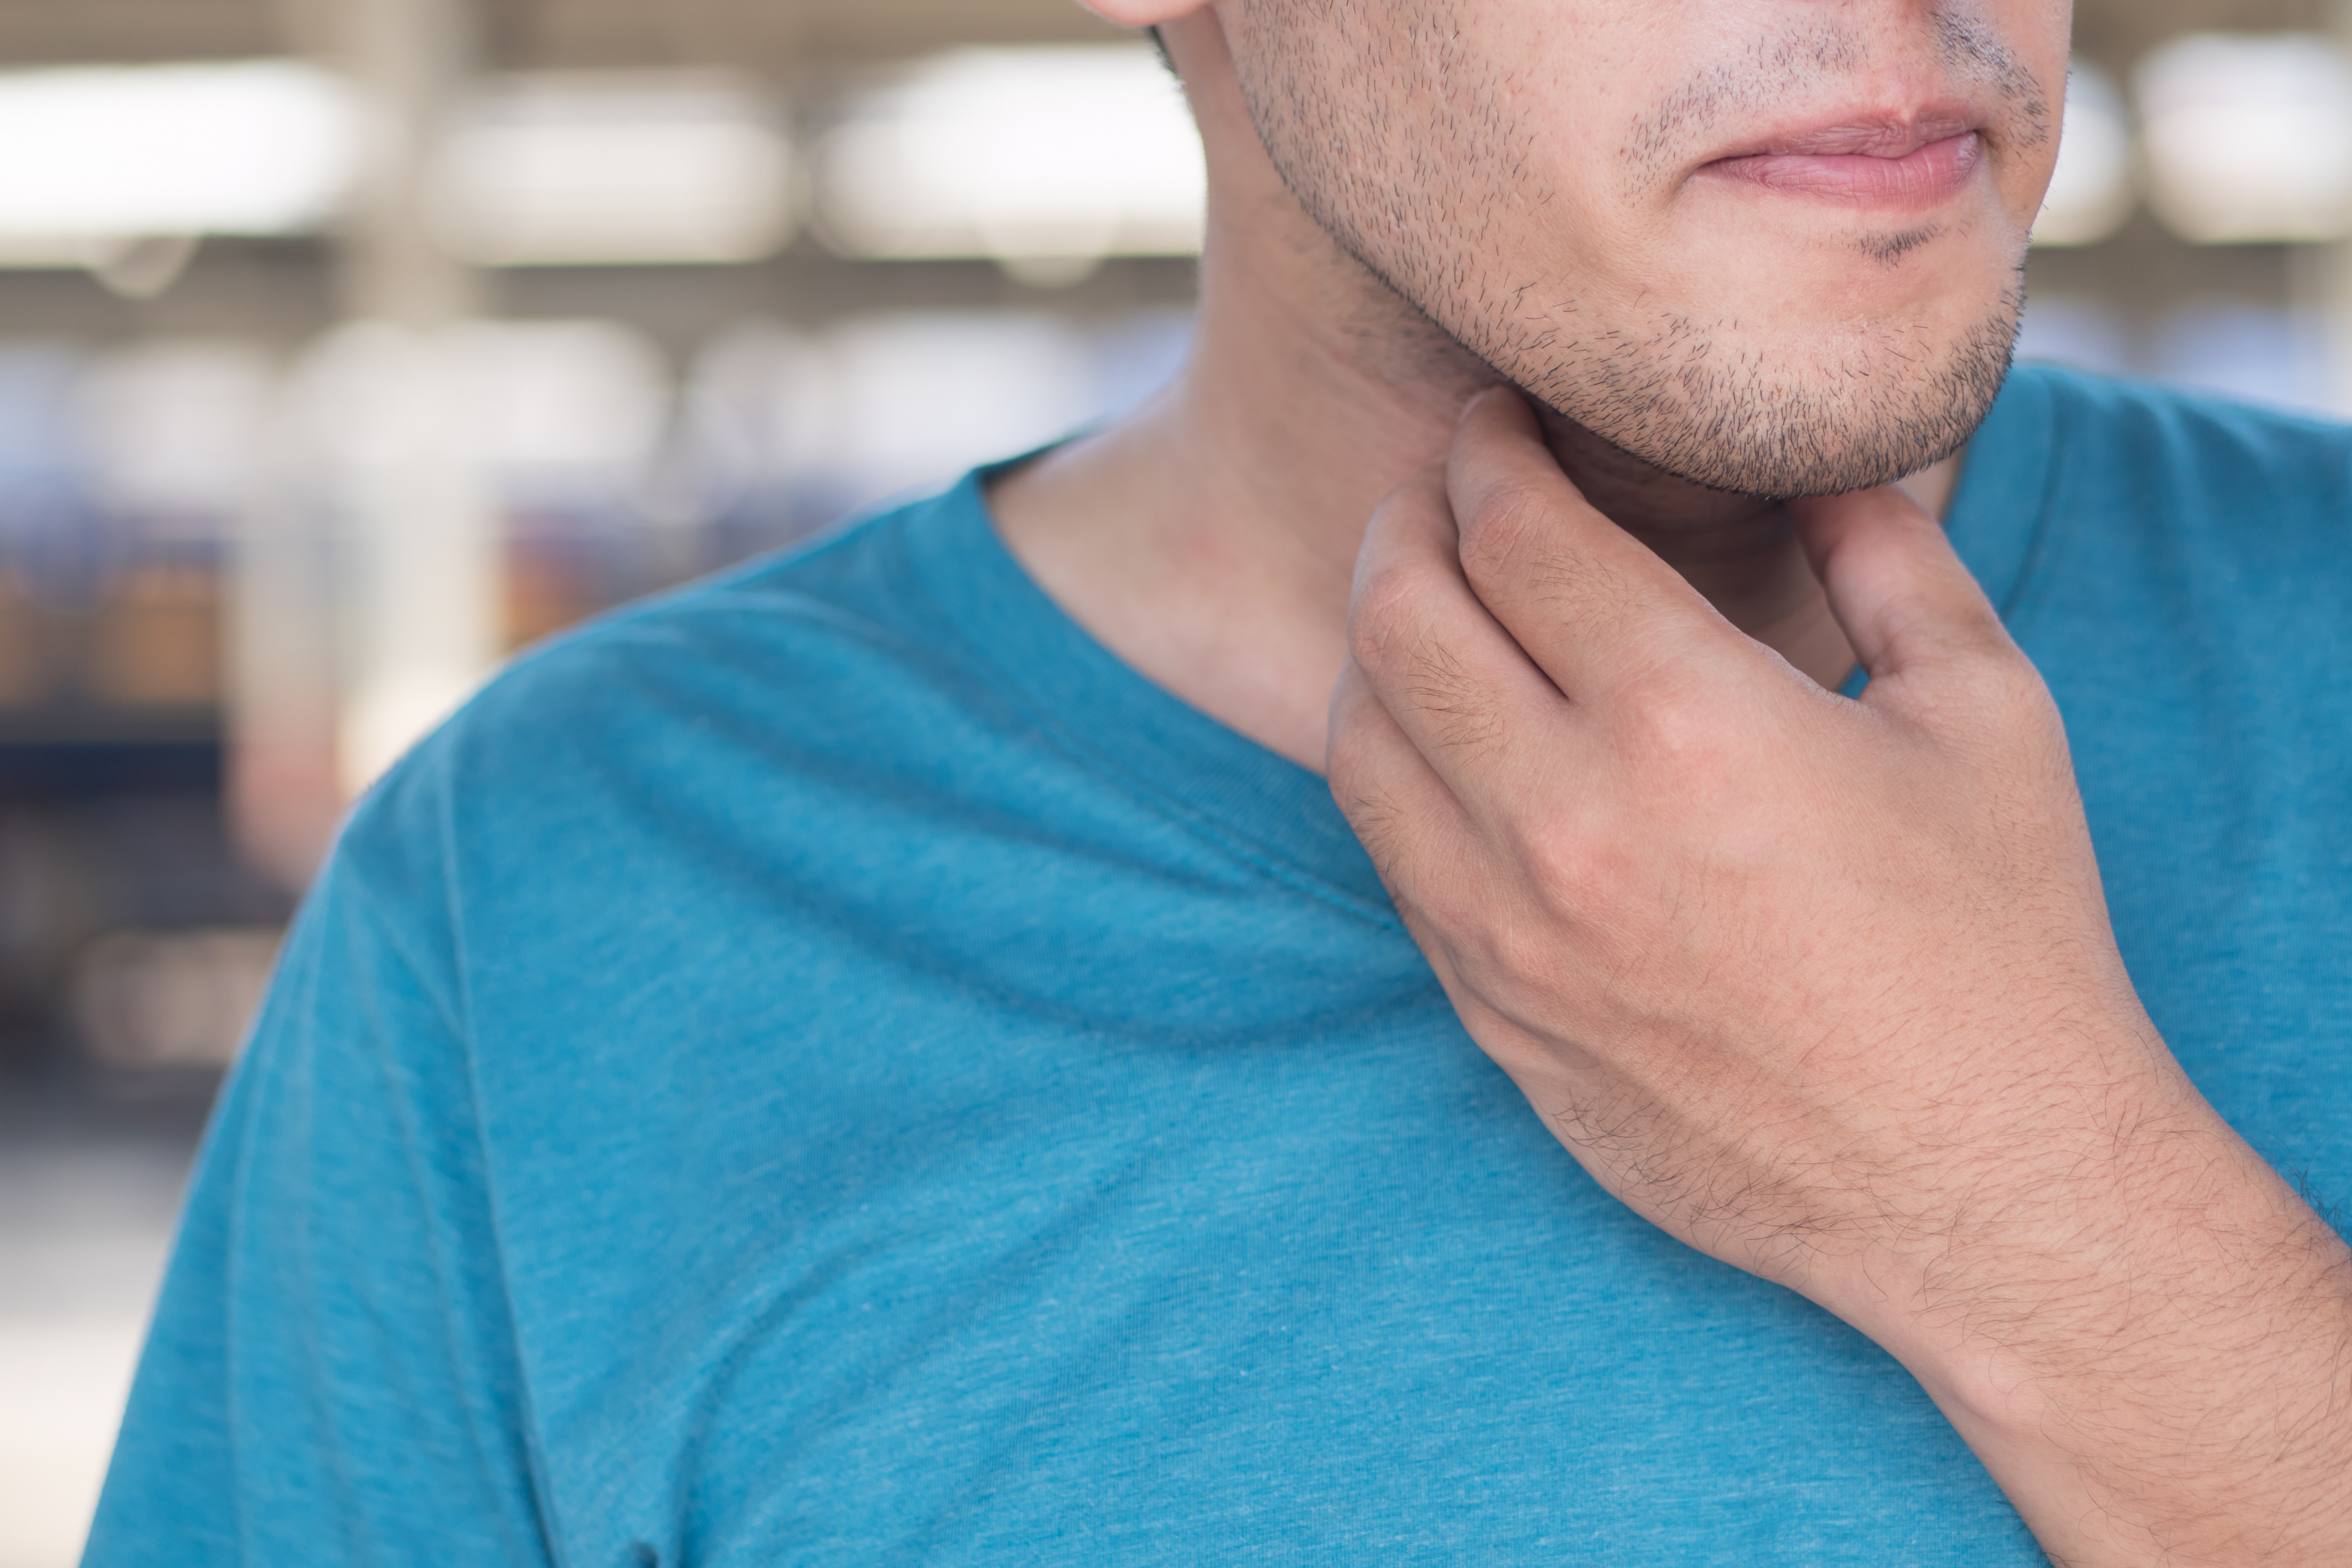 Are These Symptoms Throat Cancer or LPR?